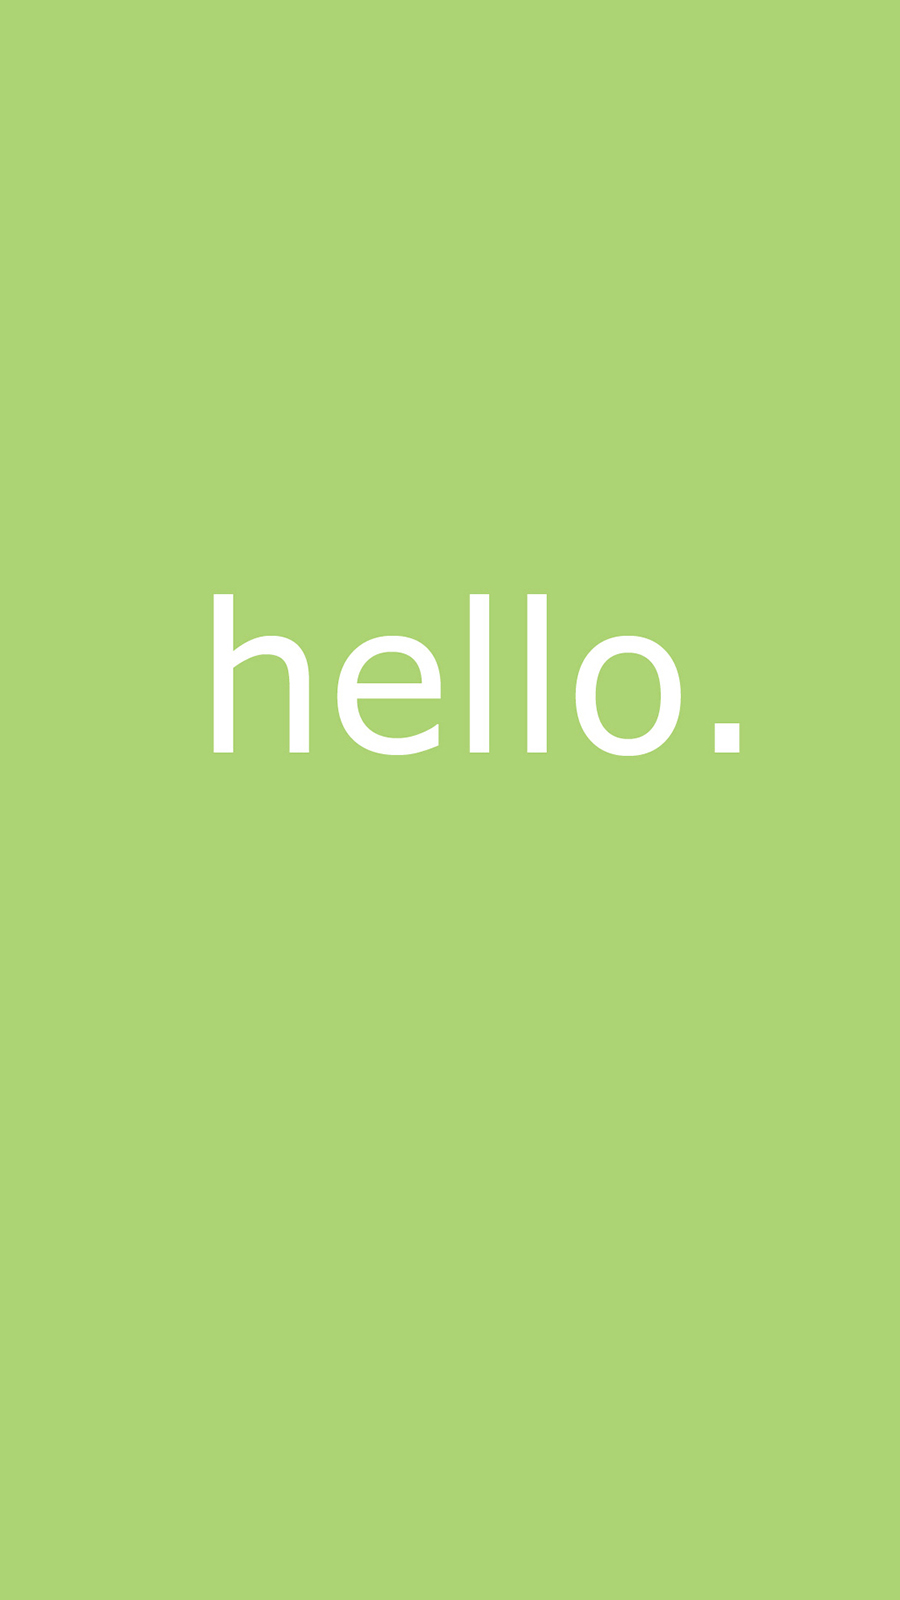 Cute Simple Hello HD Wallpapers Free Download